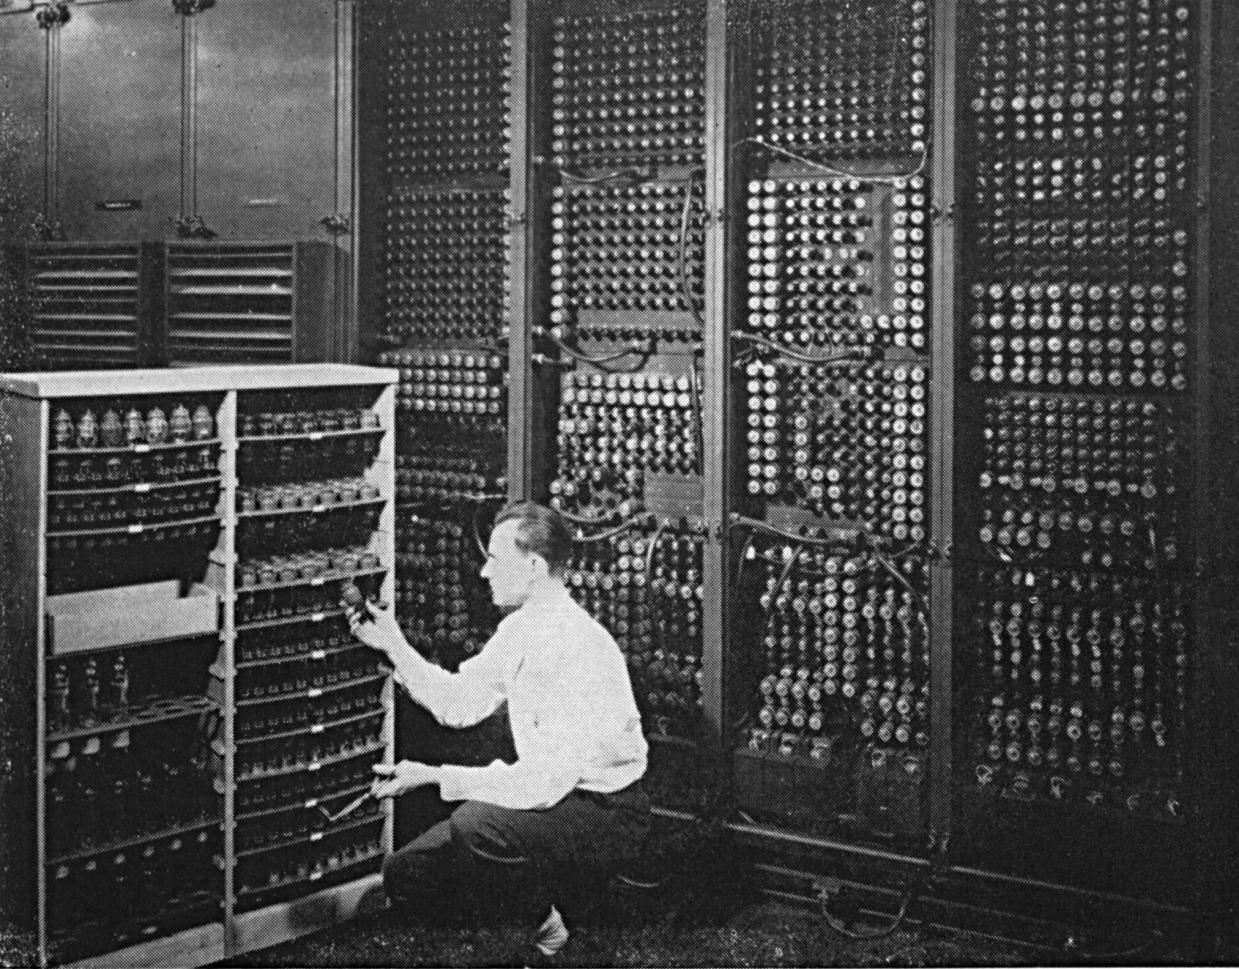 a history of the modern computers and computer science Science in history: from the abacus to the modern computer  the abacus may seem obsolete in the world of modern computers, but in  from the abacus to the modern.